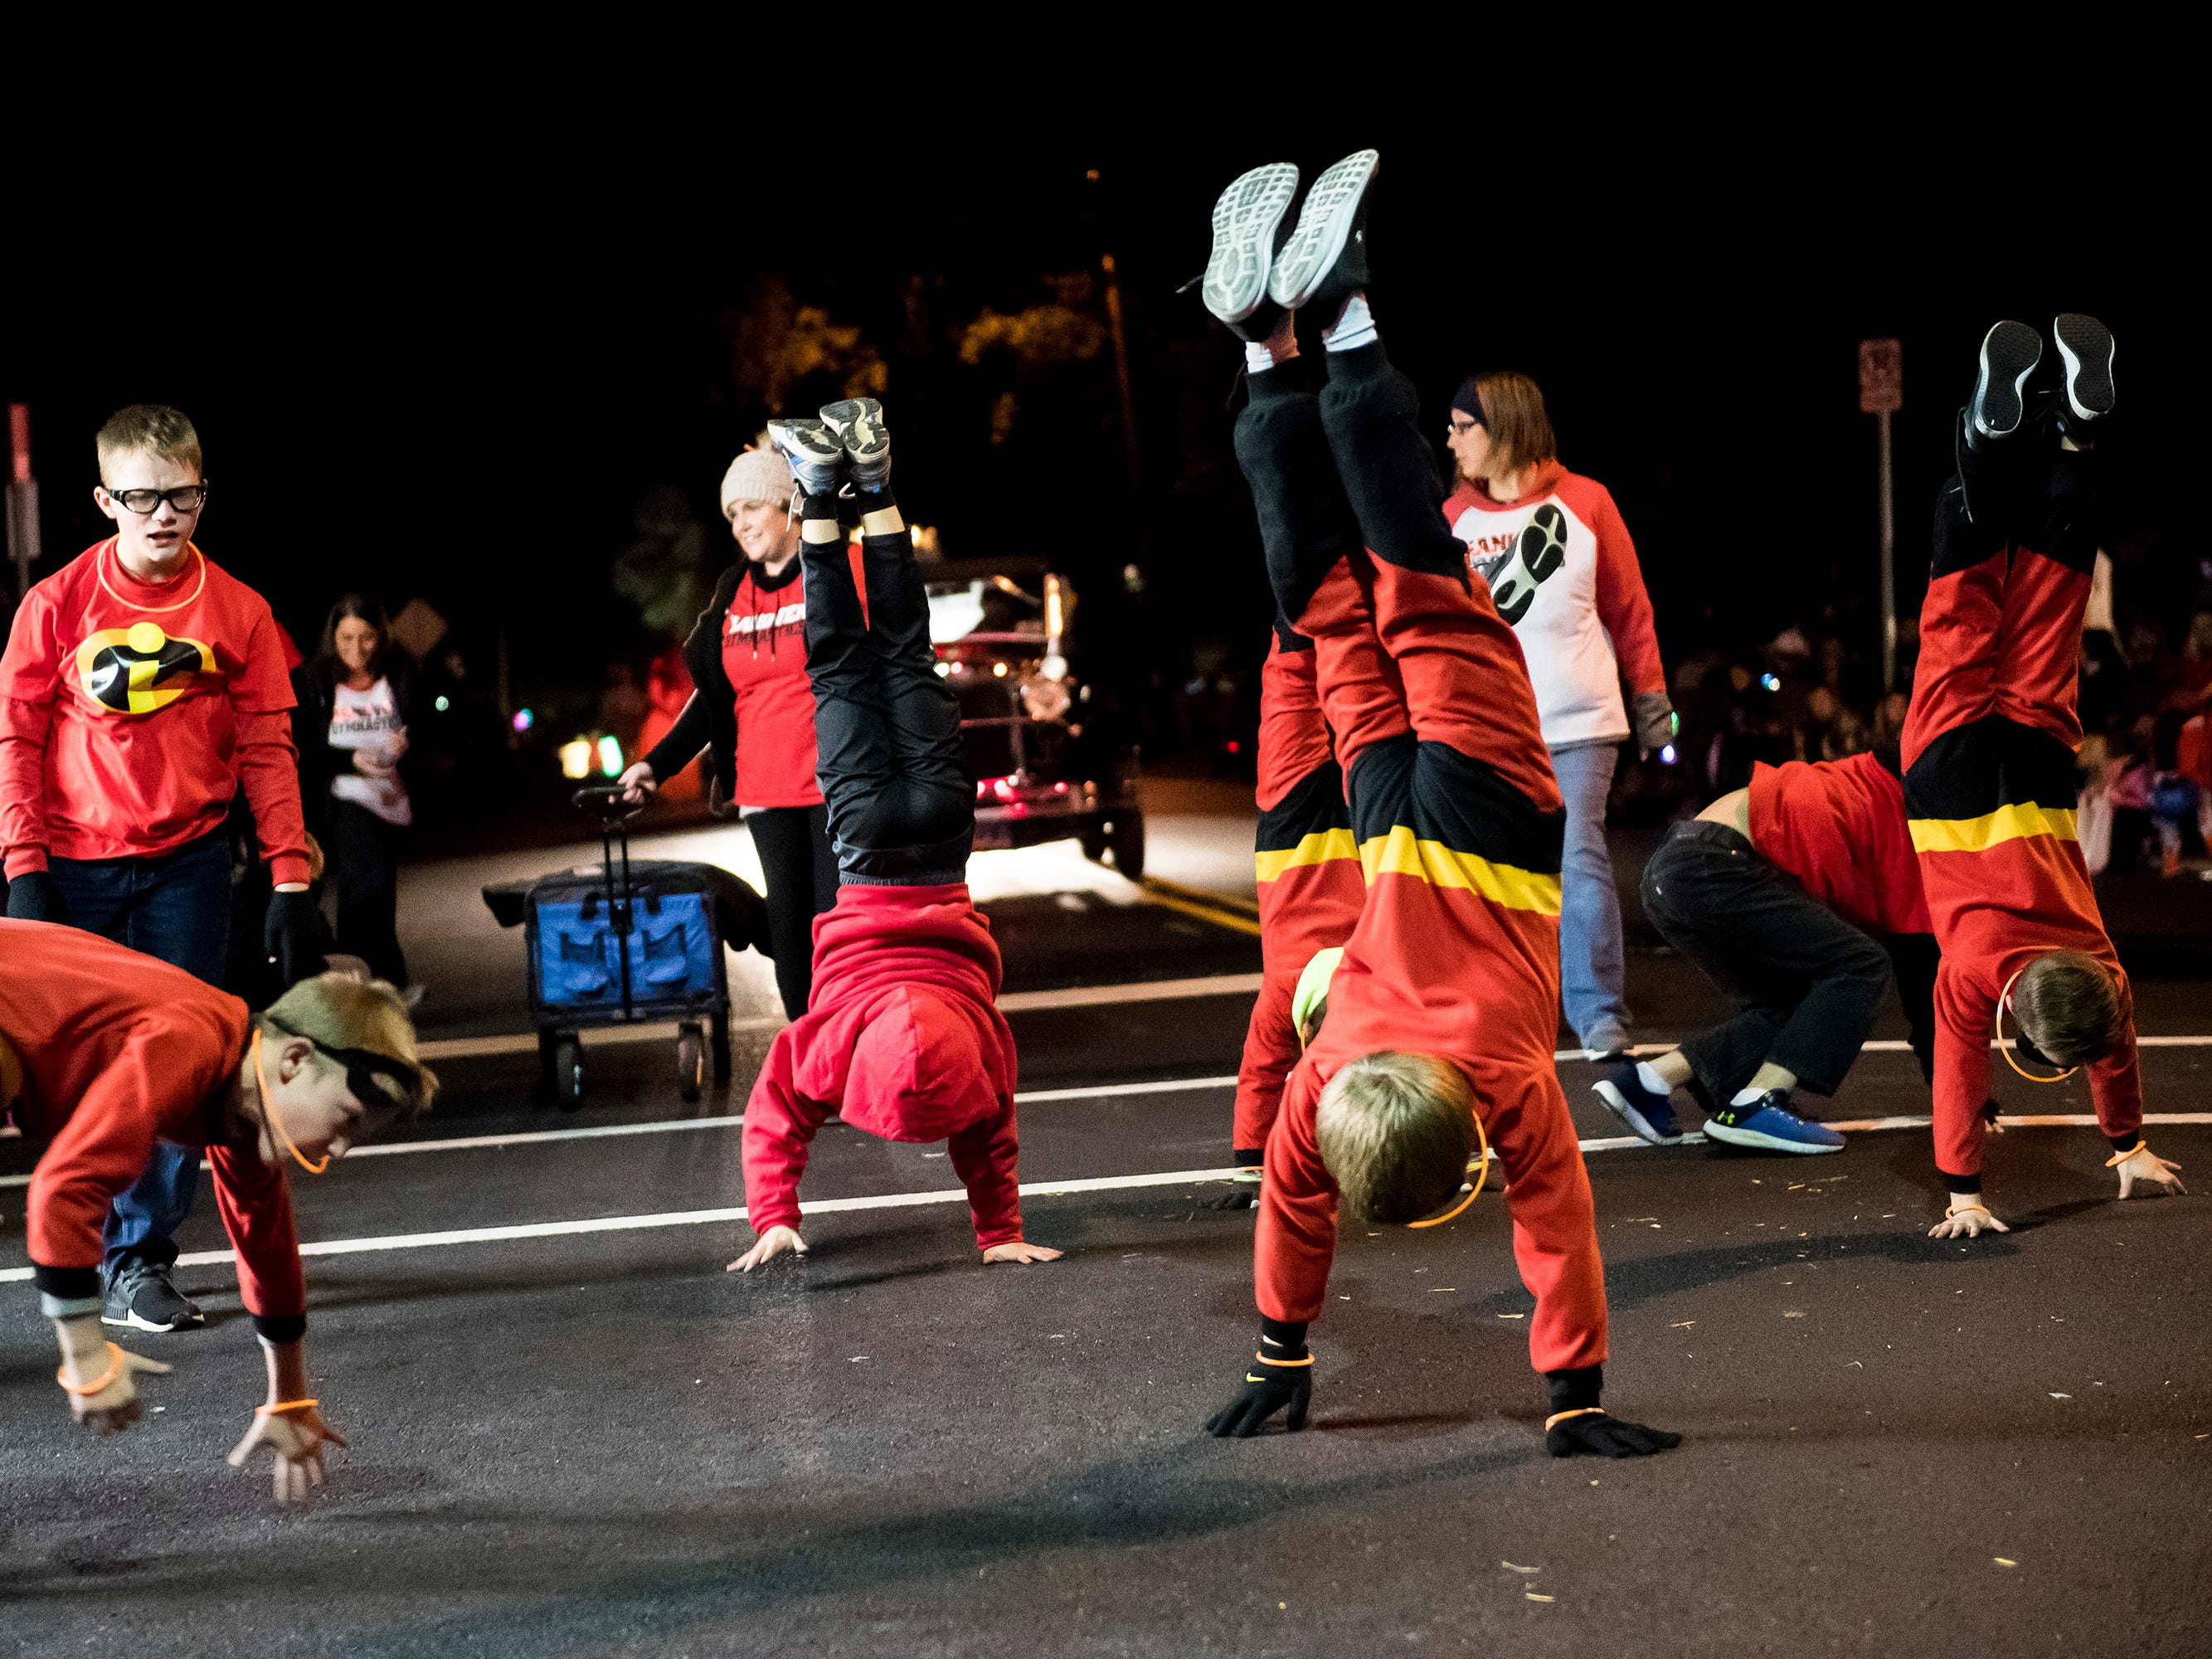 Hanover Gymnastics members do walking handstands down Baltimore Street during the 77th annual Hanover Halloween parade on Thursday, October 25, 2018.